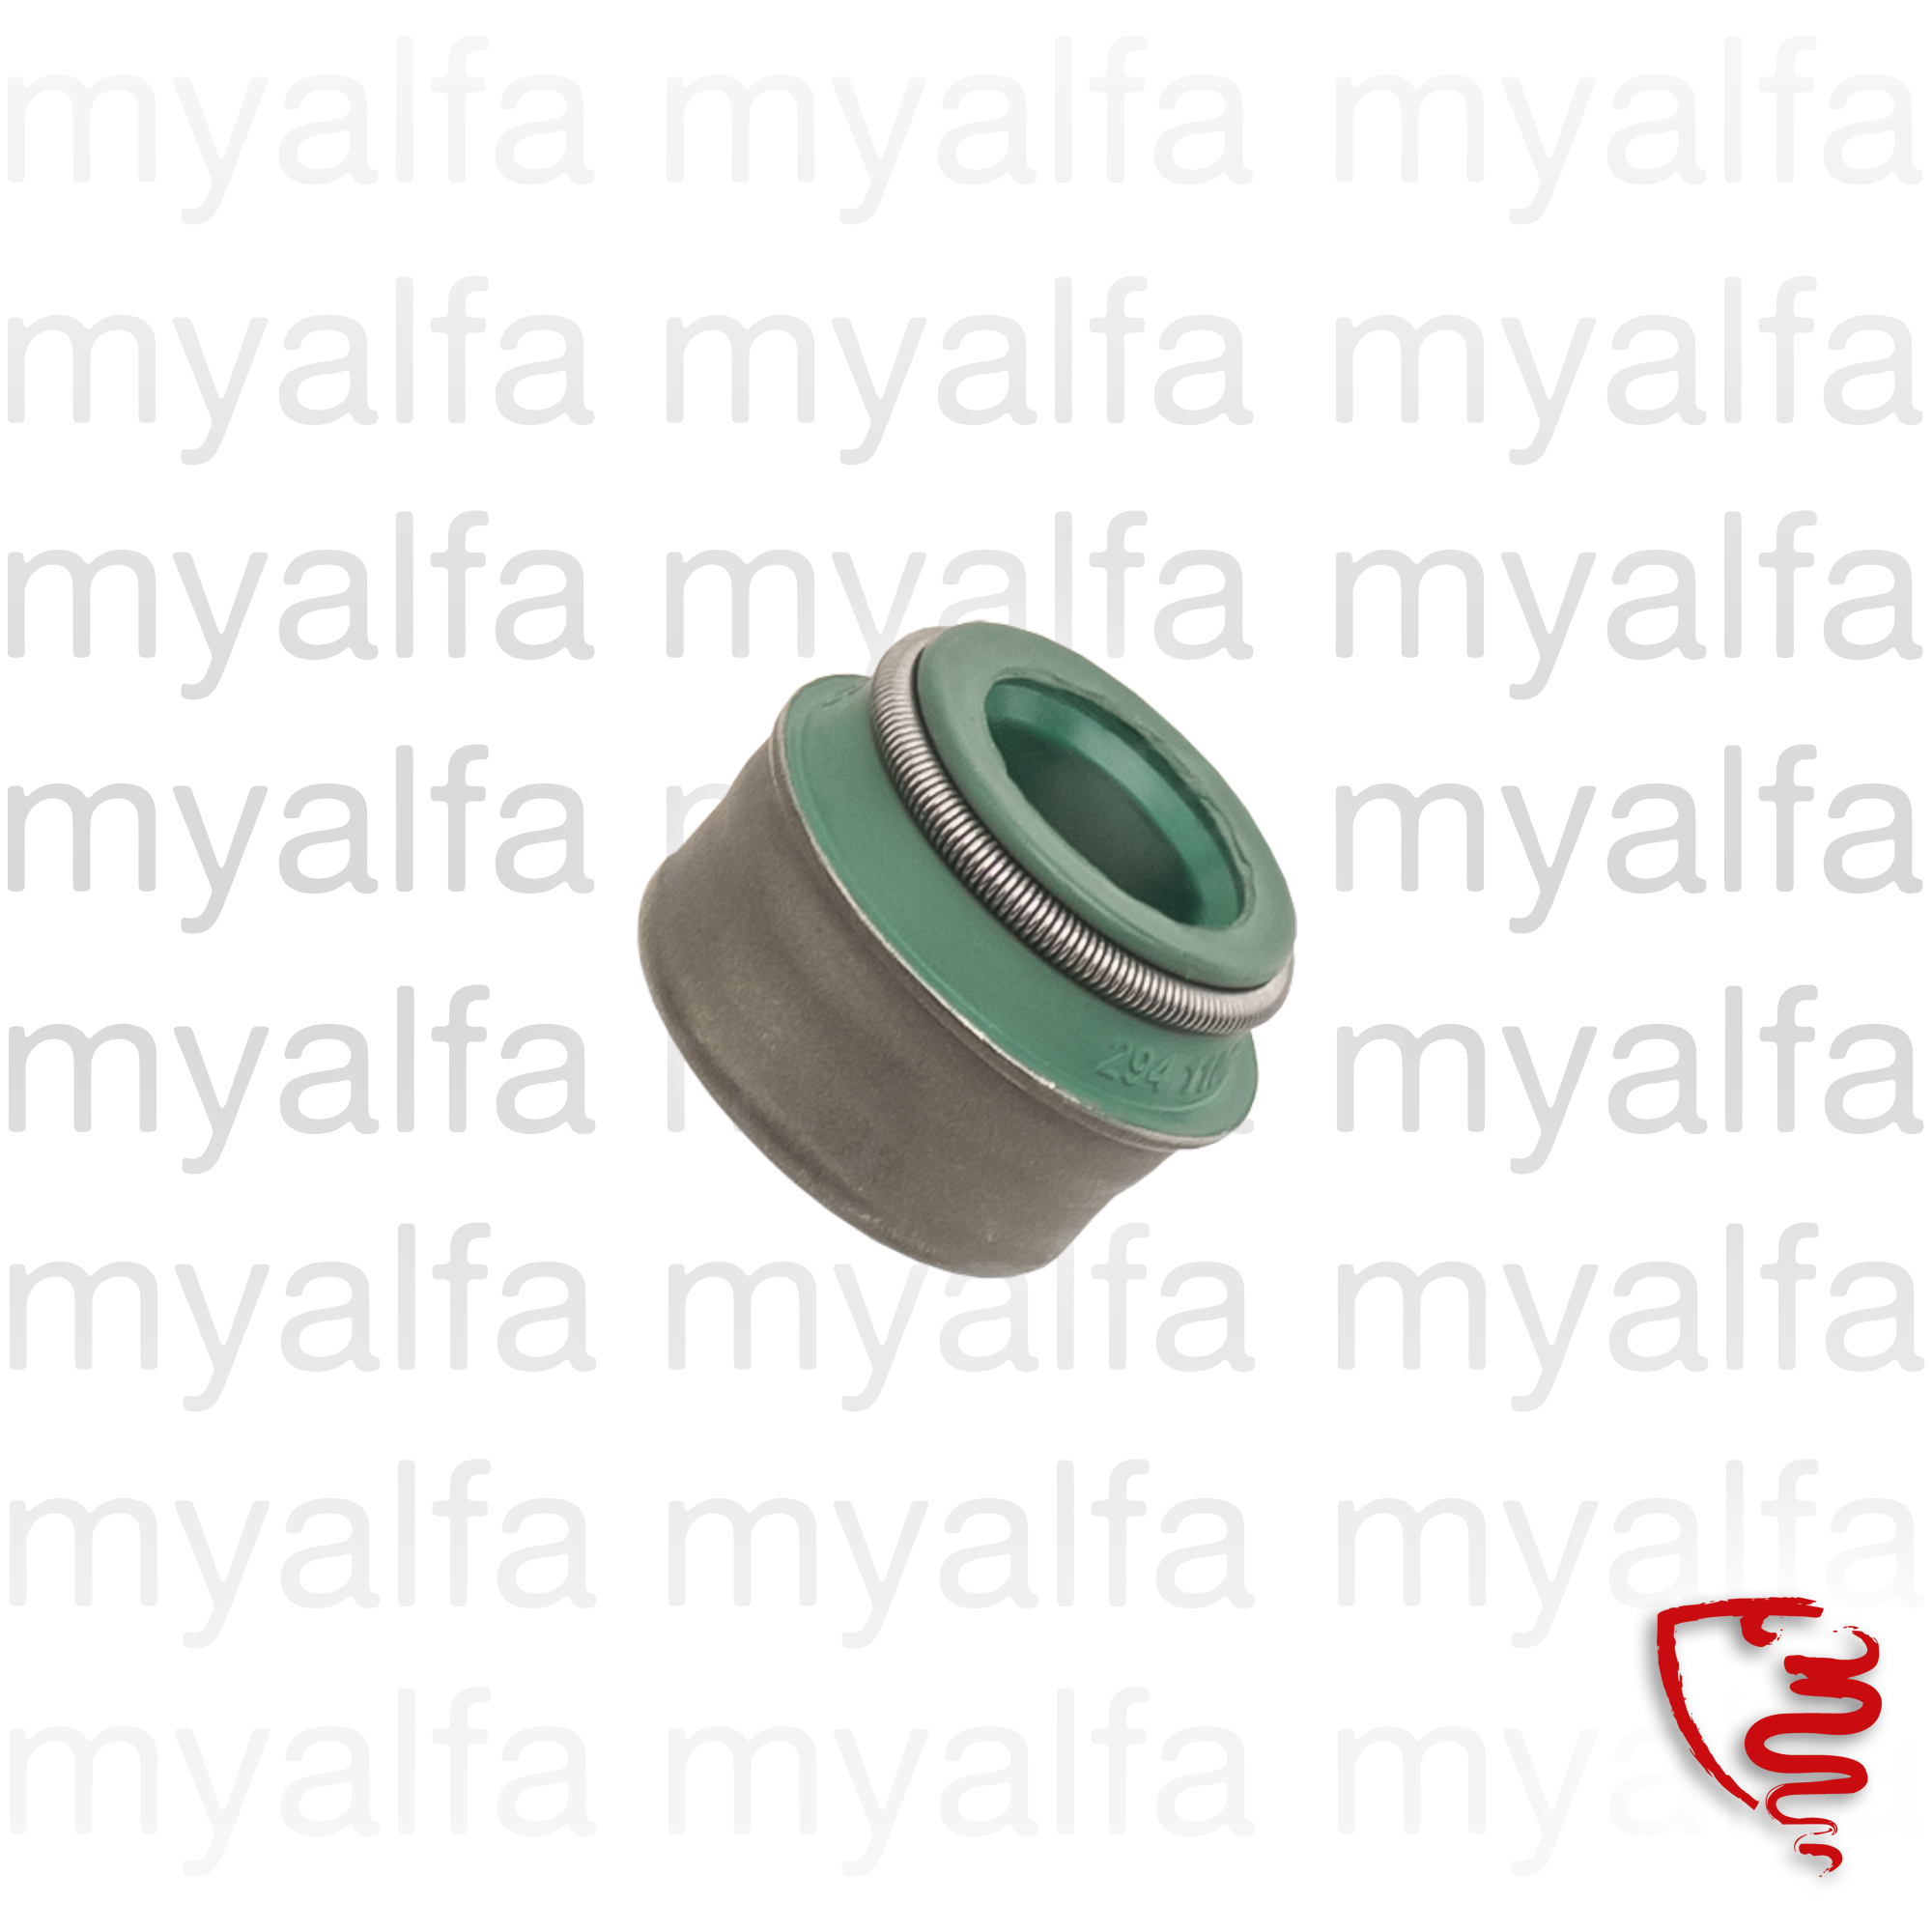 Seal the guides of valves 8MM - 750 for 750/101, Engine Gaskets, Cylinder head gaskets